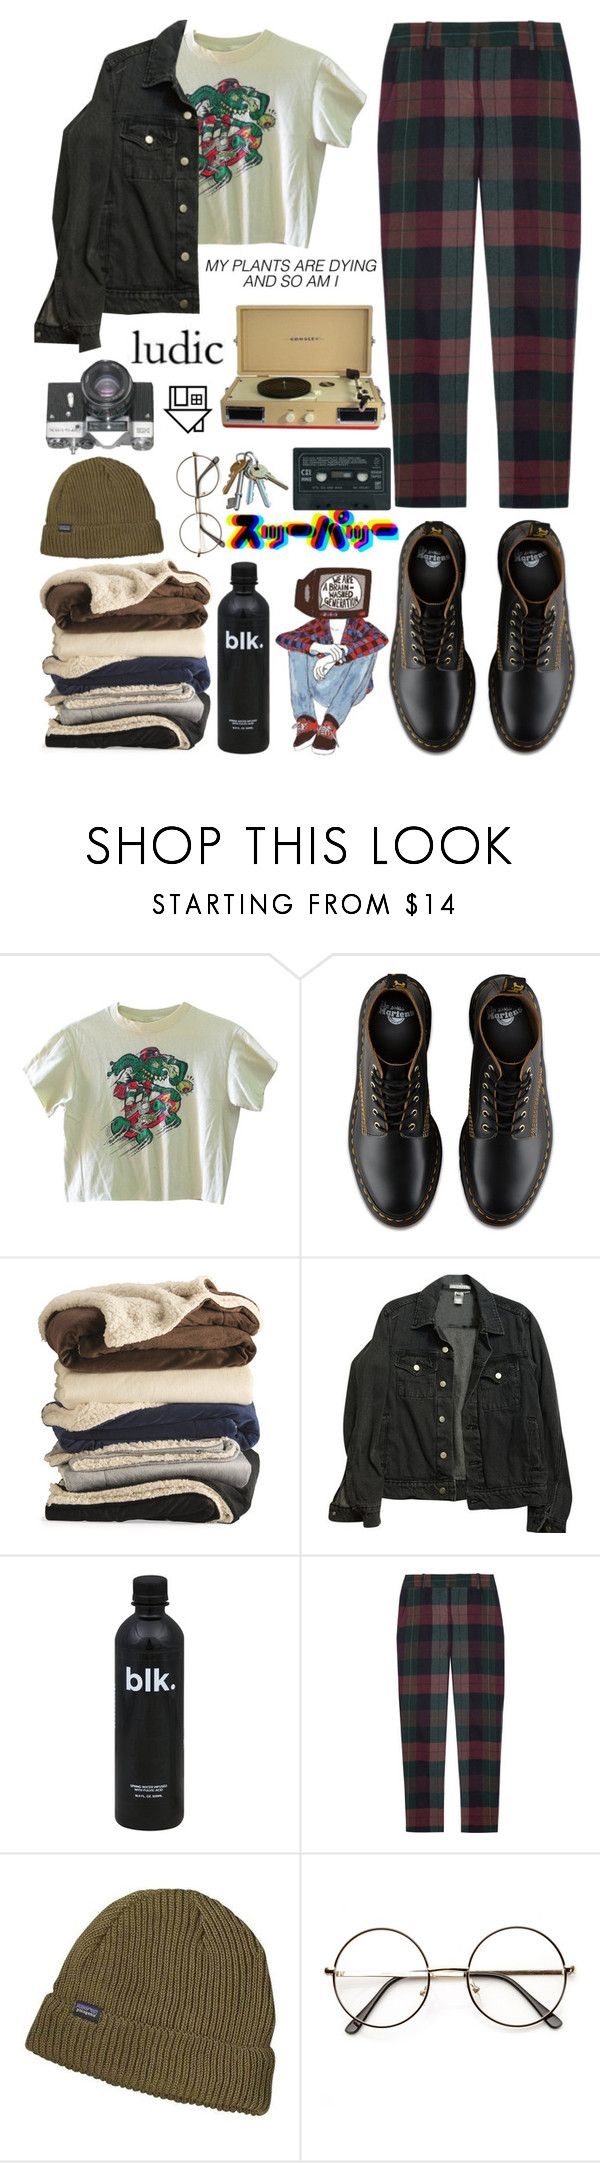 """merry christmas i guess"" by baby-boba-tea ❤ liked on Polyvore featuring American Apparel, Theory, Patagonia, Crosley and Columbia"